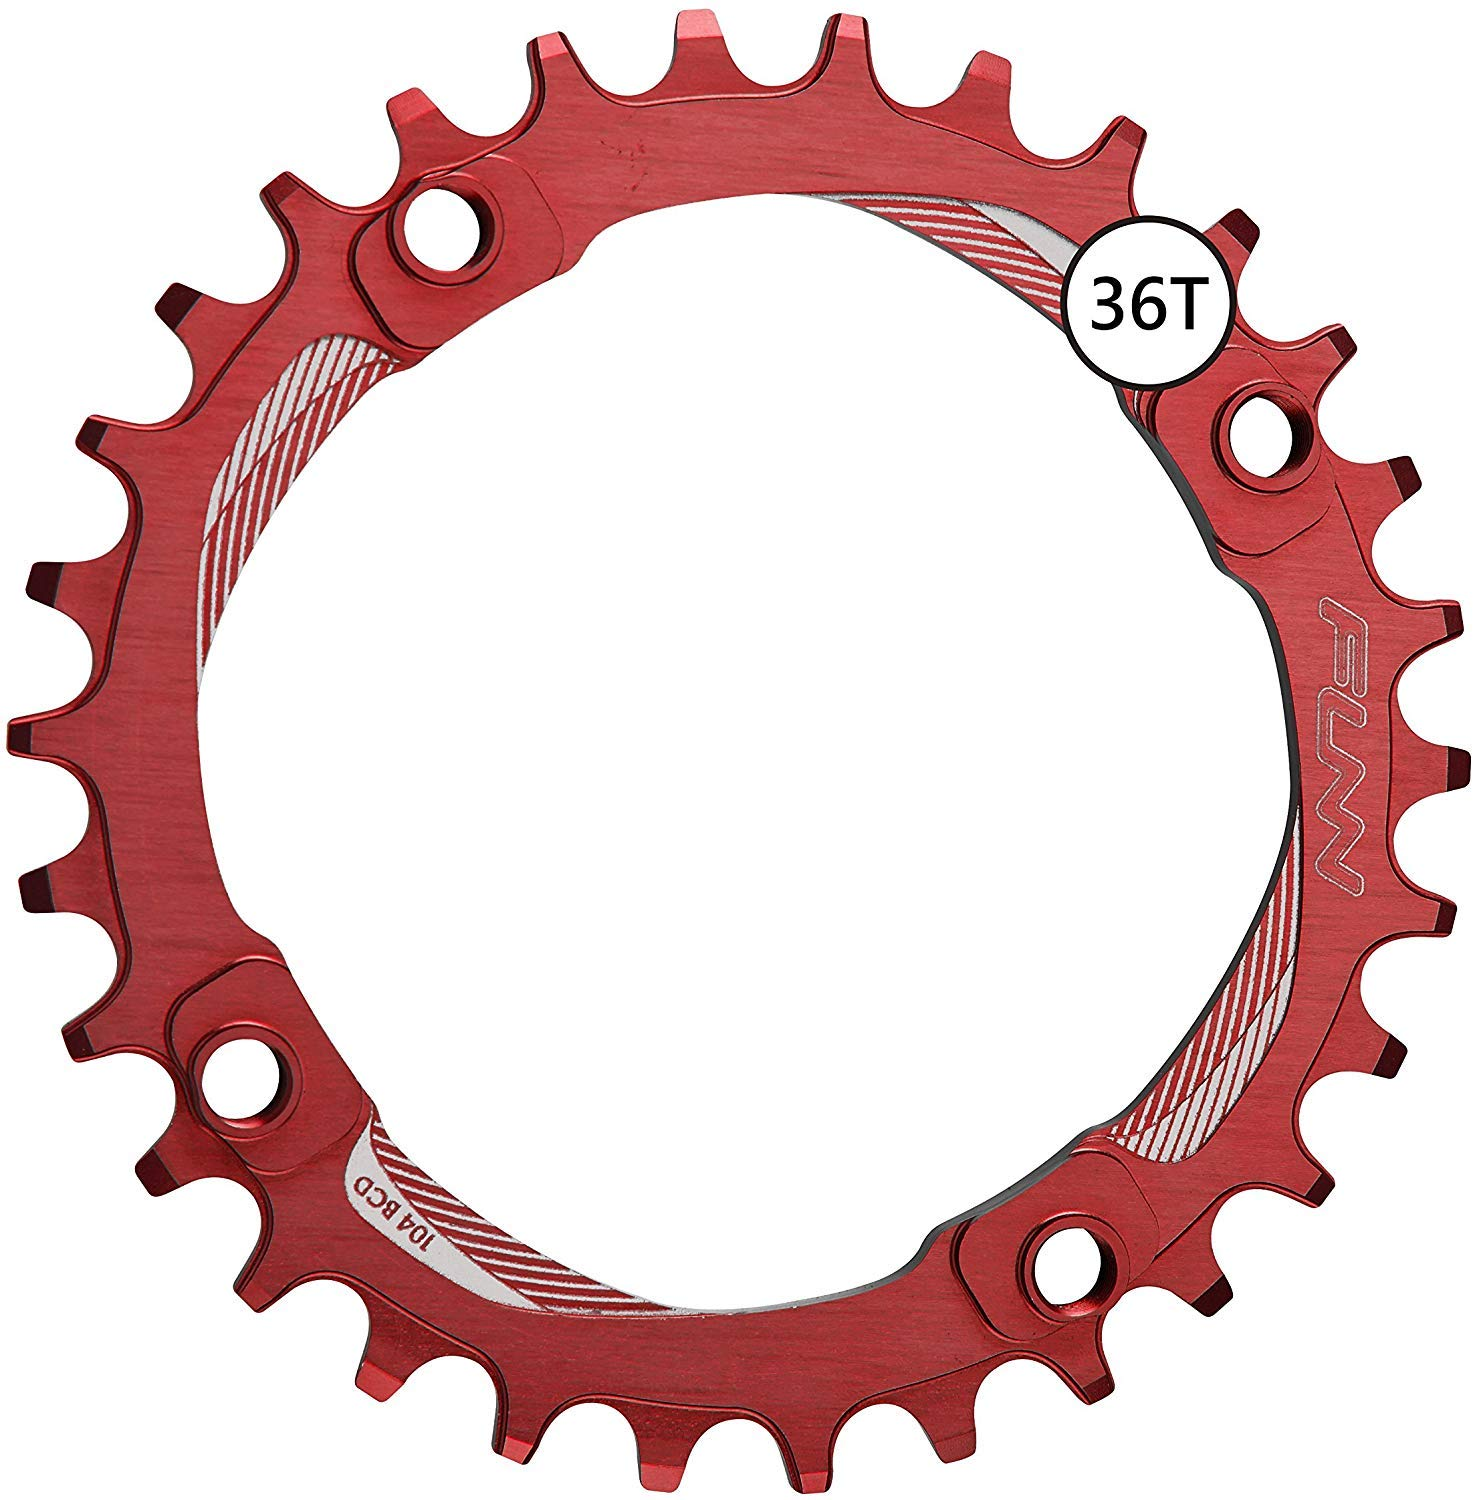 Funn Solo Narrow Wide Chain Ring BCD 104mm (36T Red)